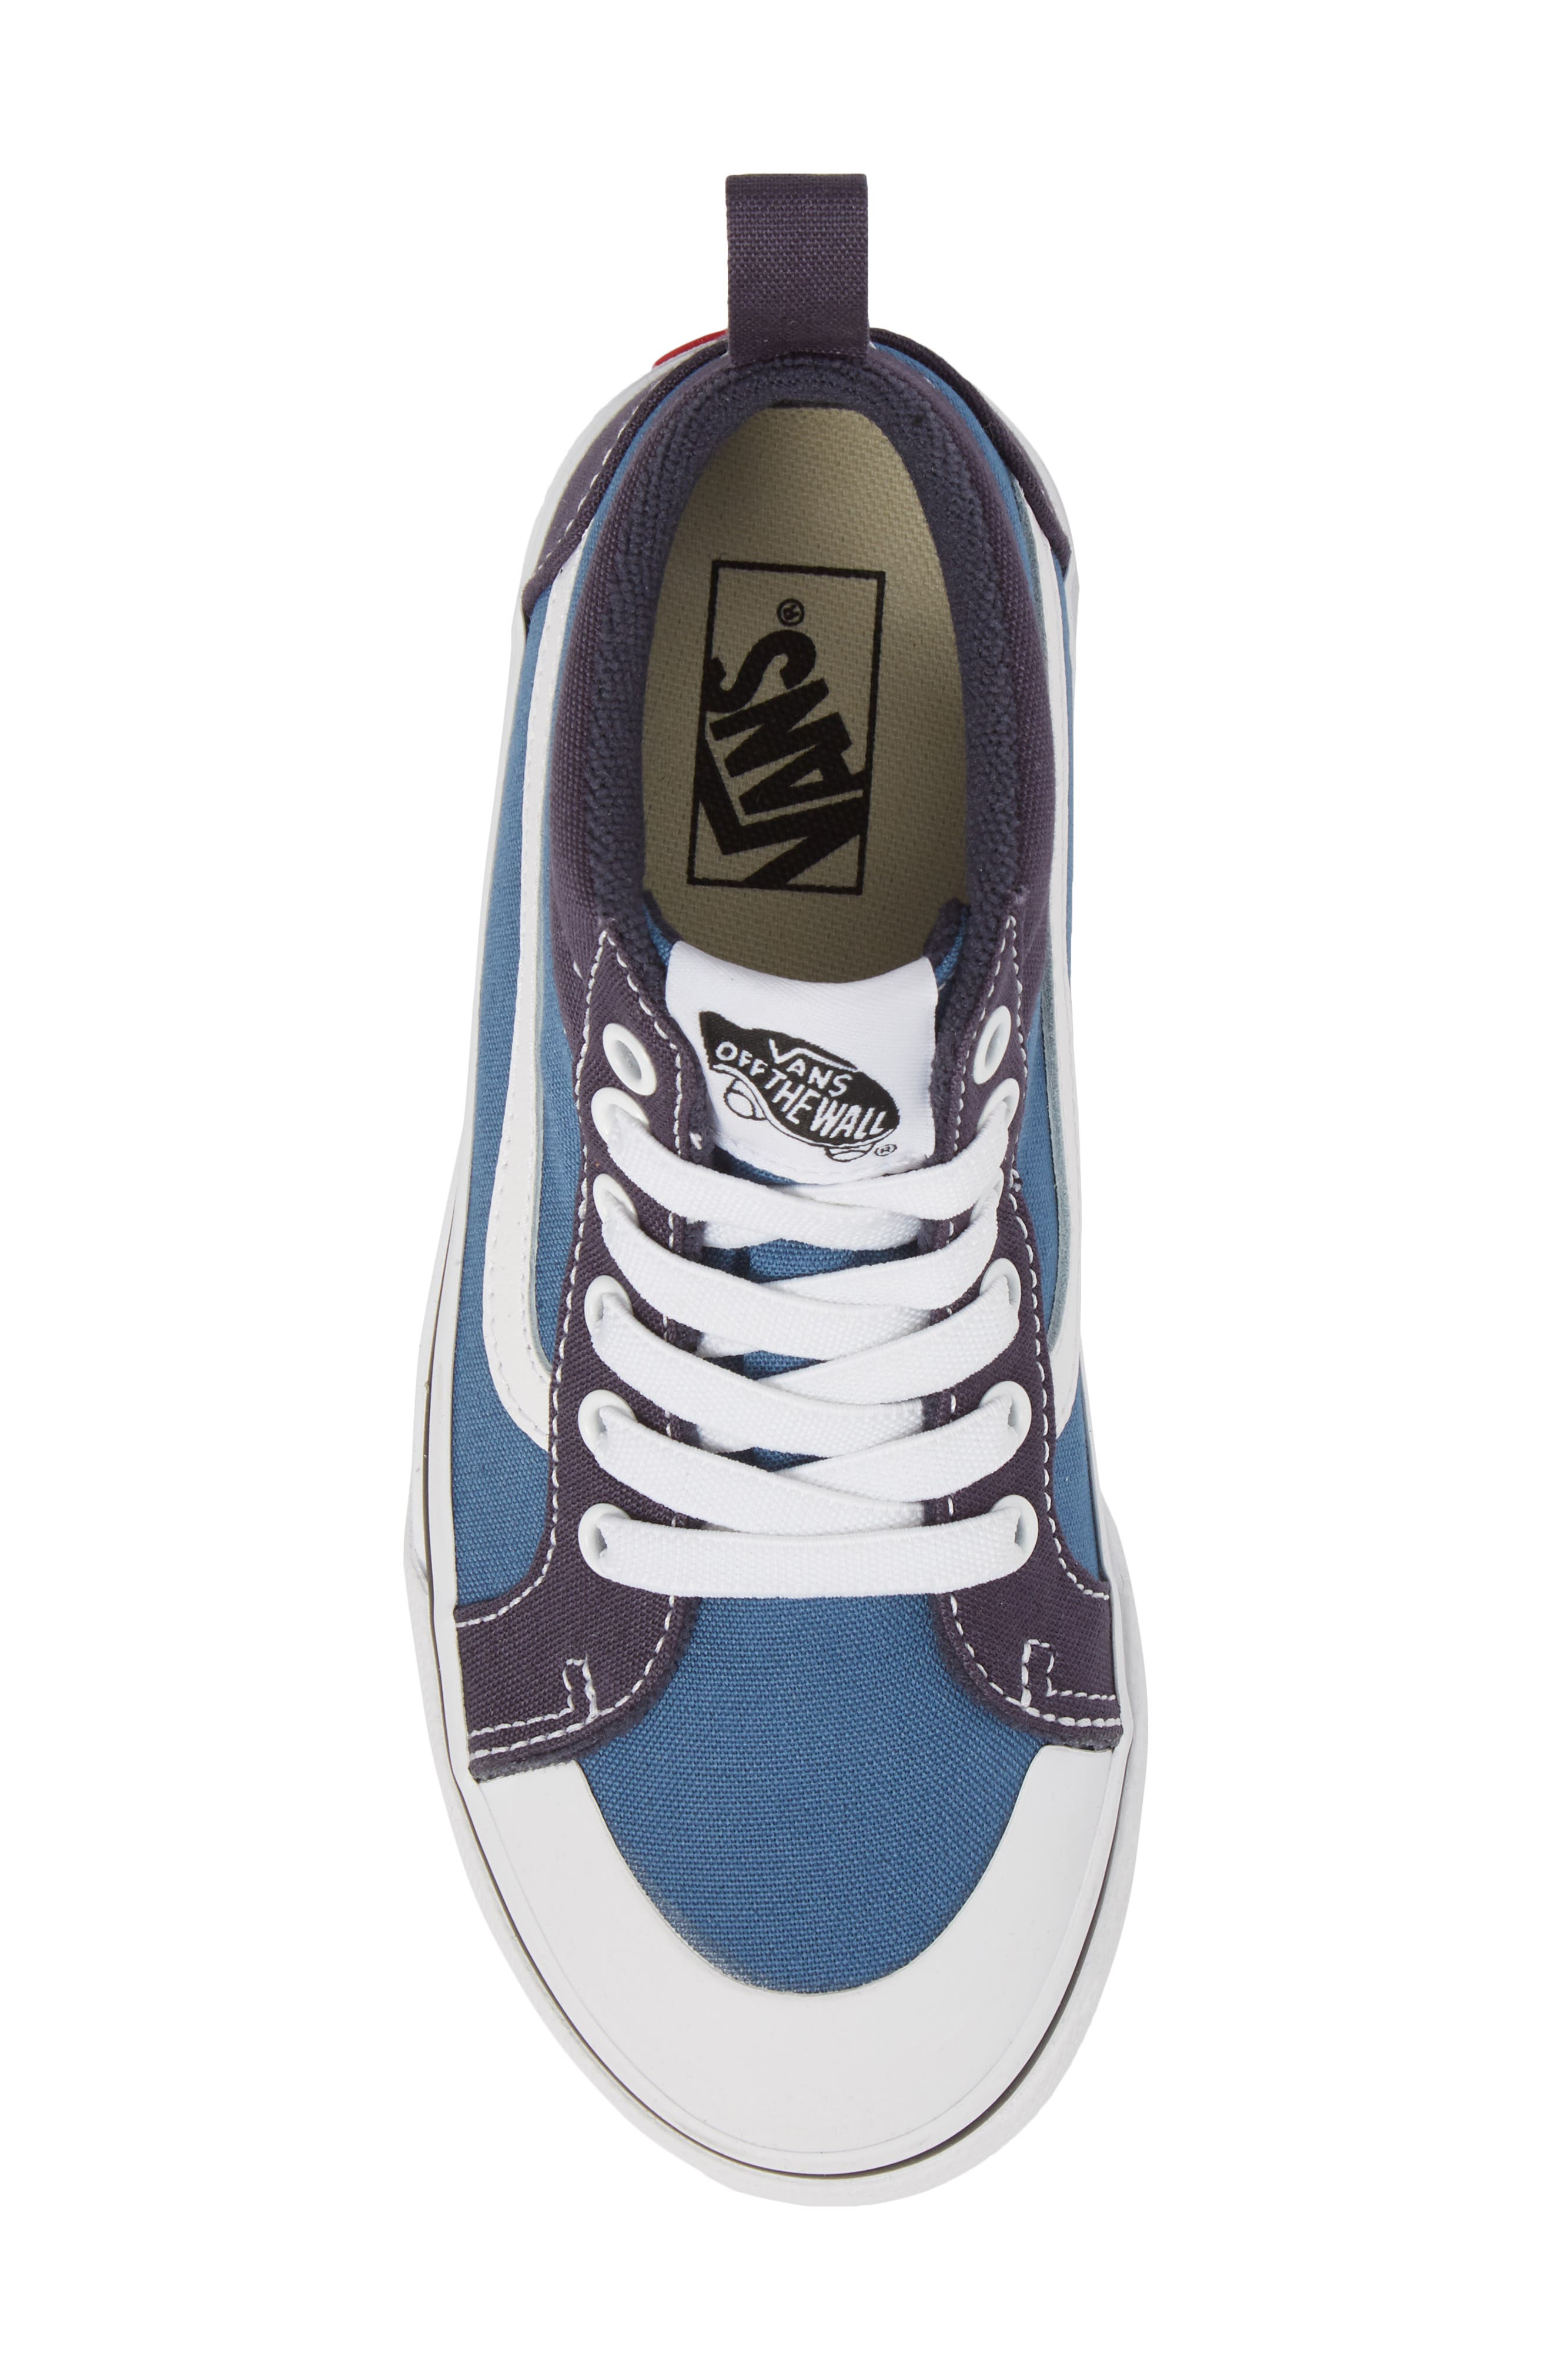 Racer Mid Elastic Lace Sneaker,                             Alternate thumbnail 32, color,